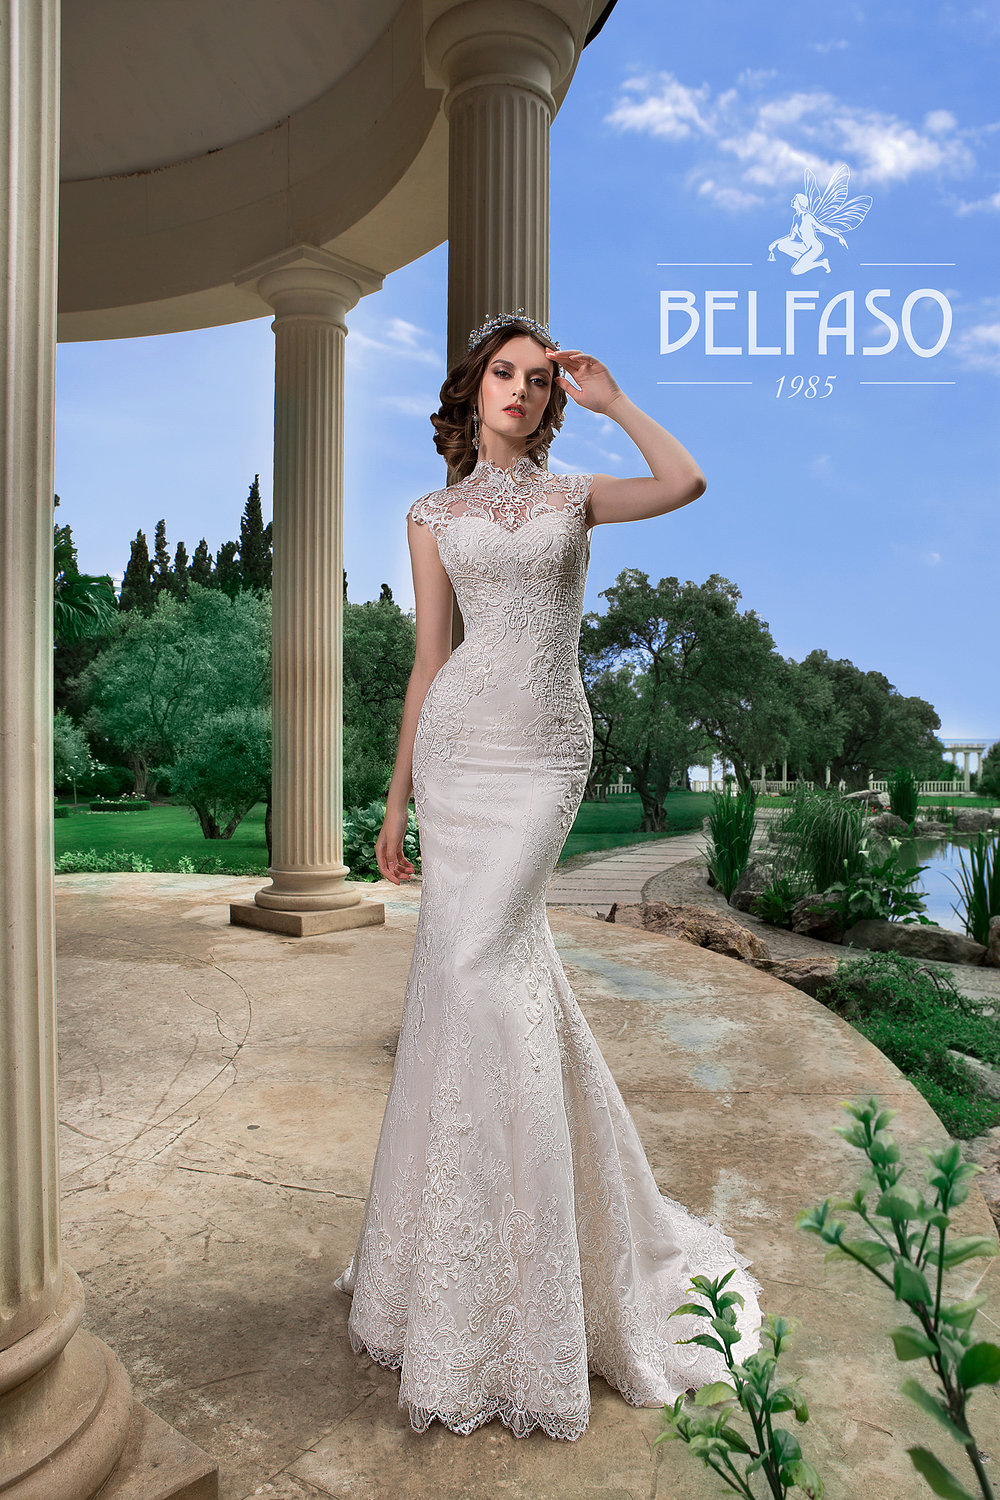 GVINET wedding dress by BELFASO